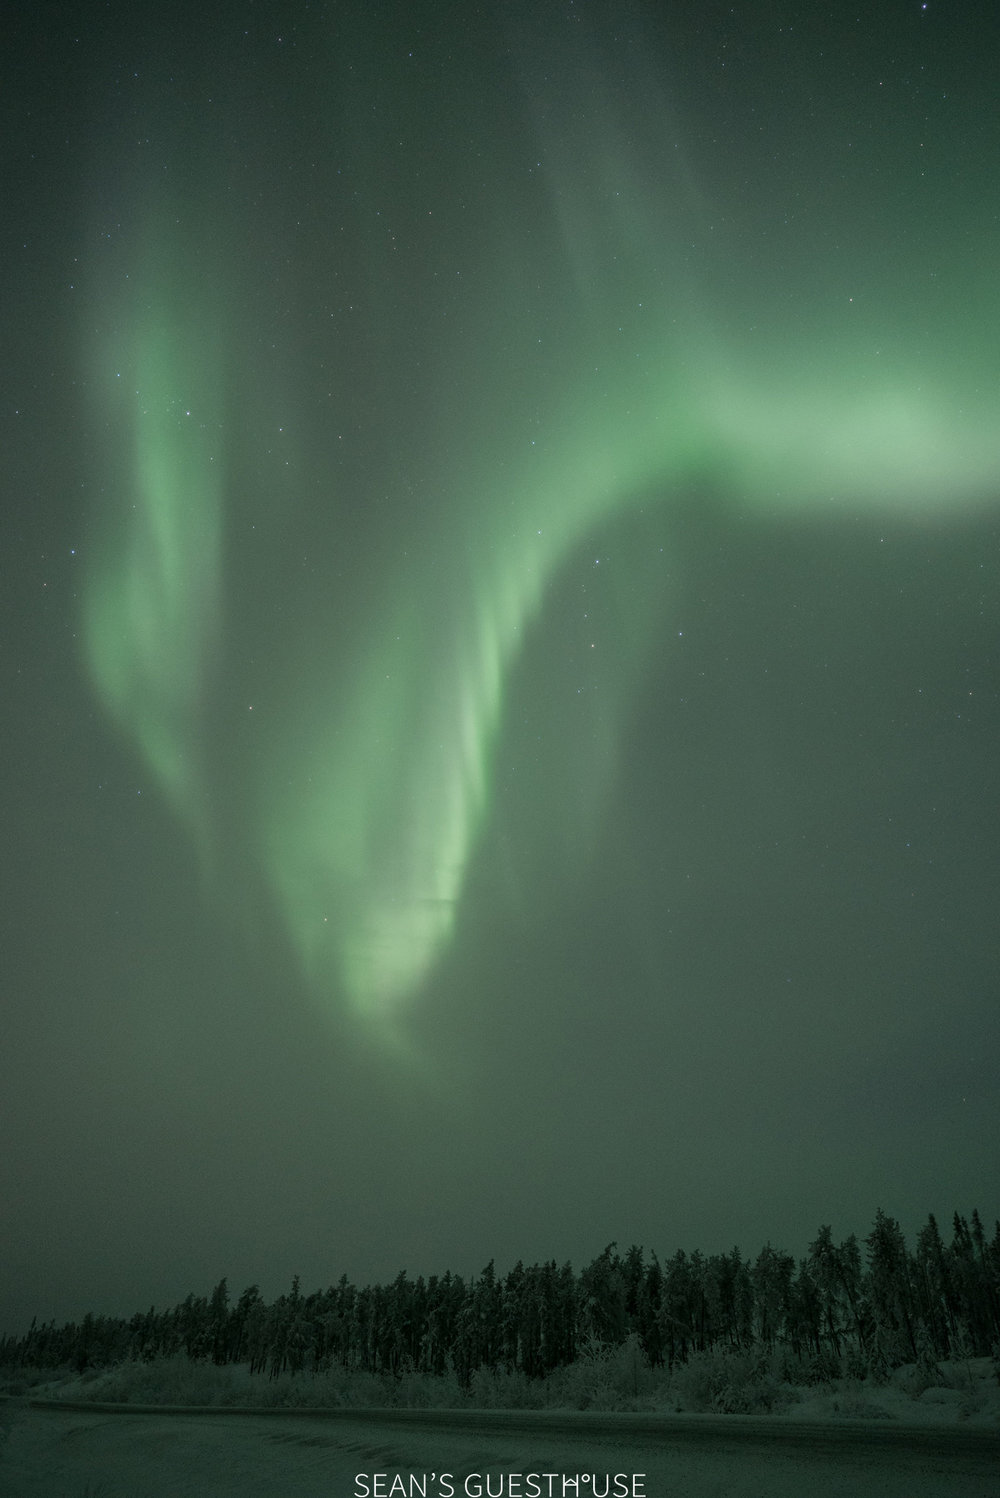 Best place to see northern lights - 4.jpg